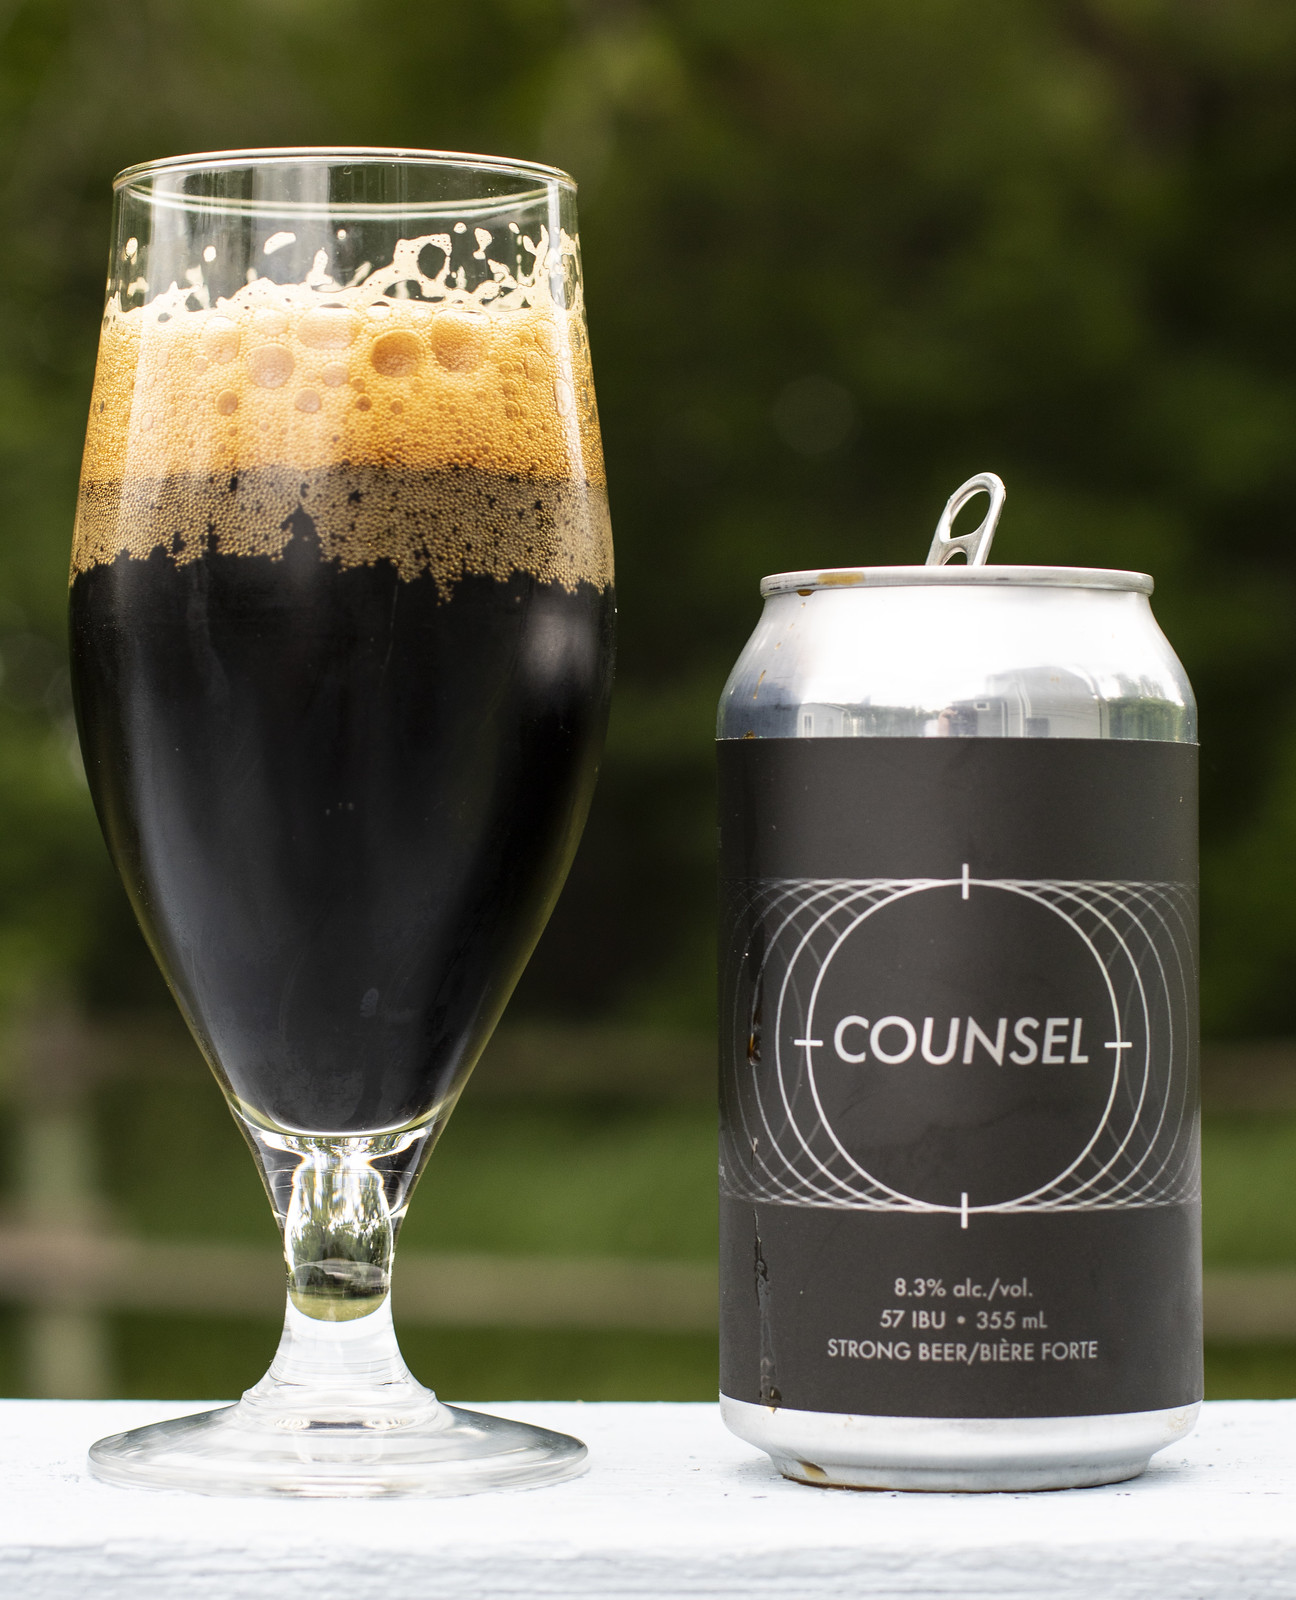 2 Crows Counsel Imperial Stout with Coconut and French Oak